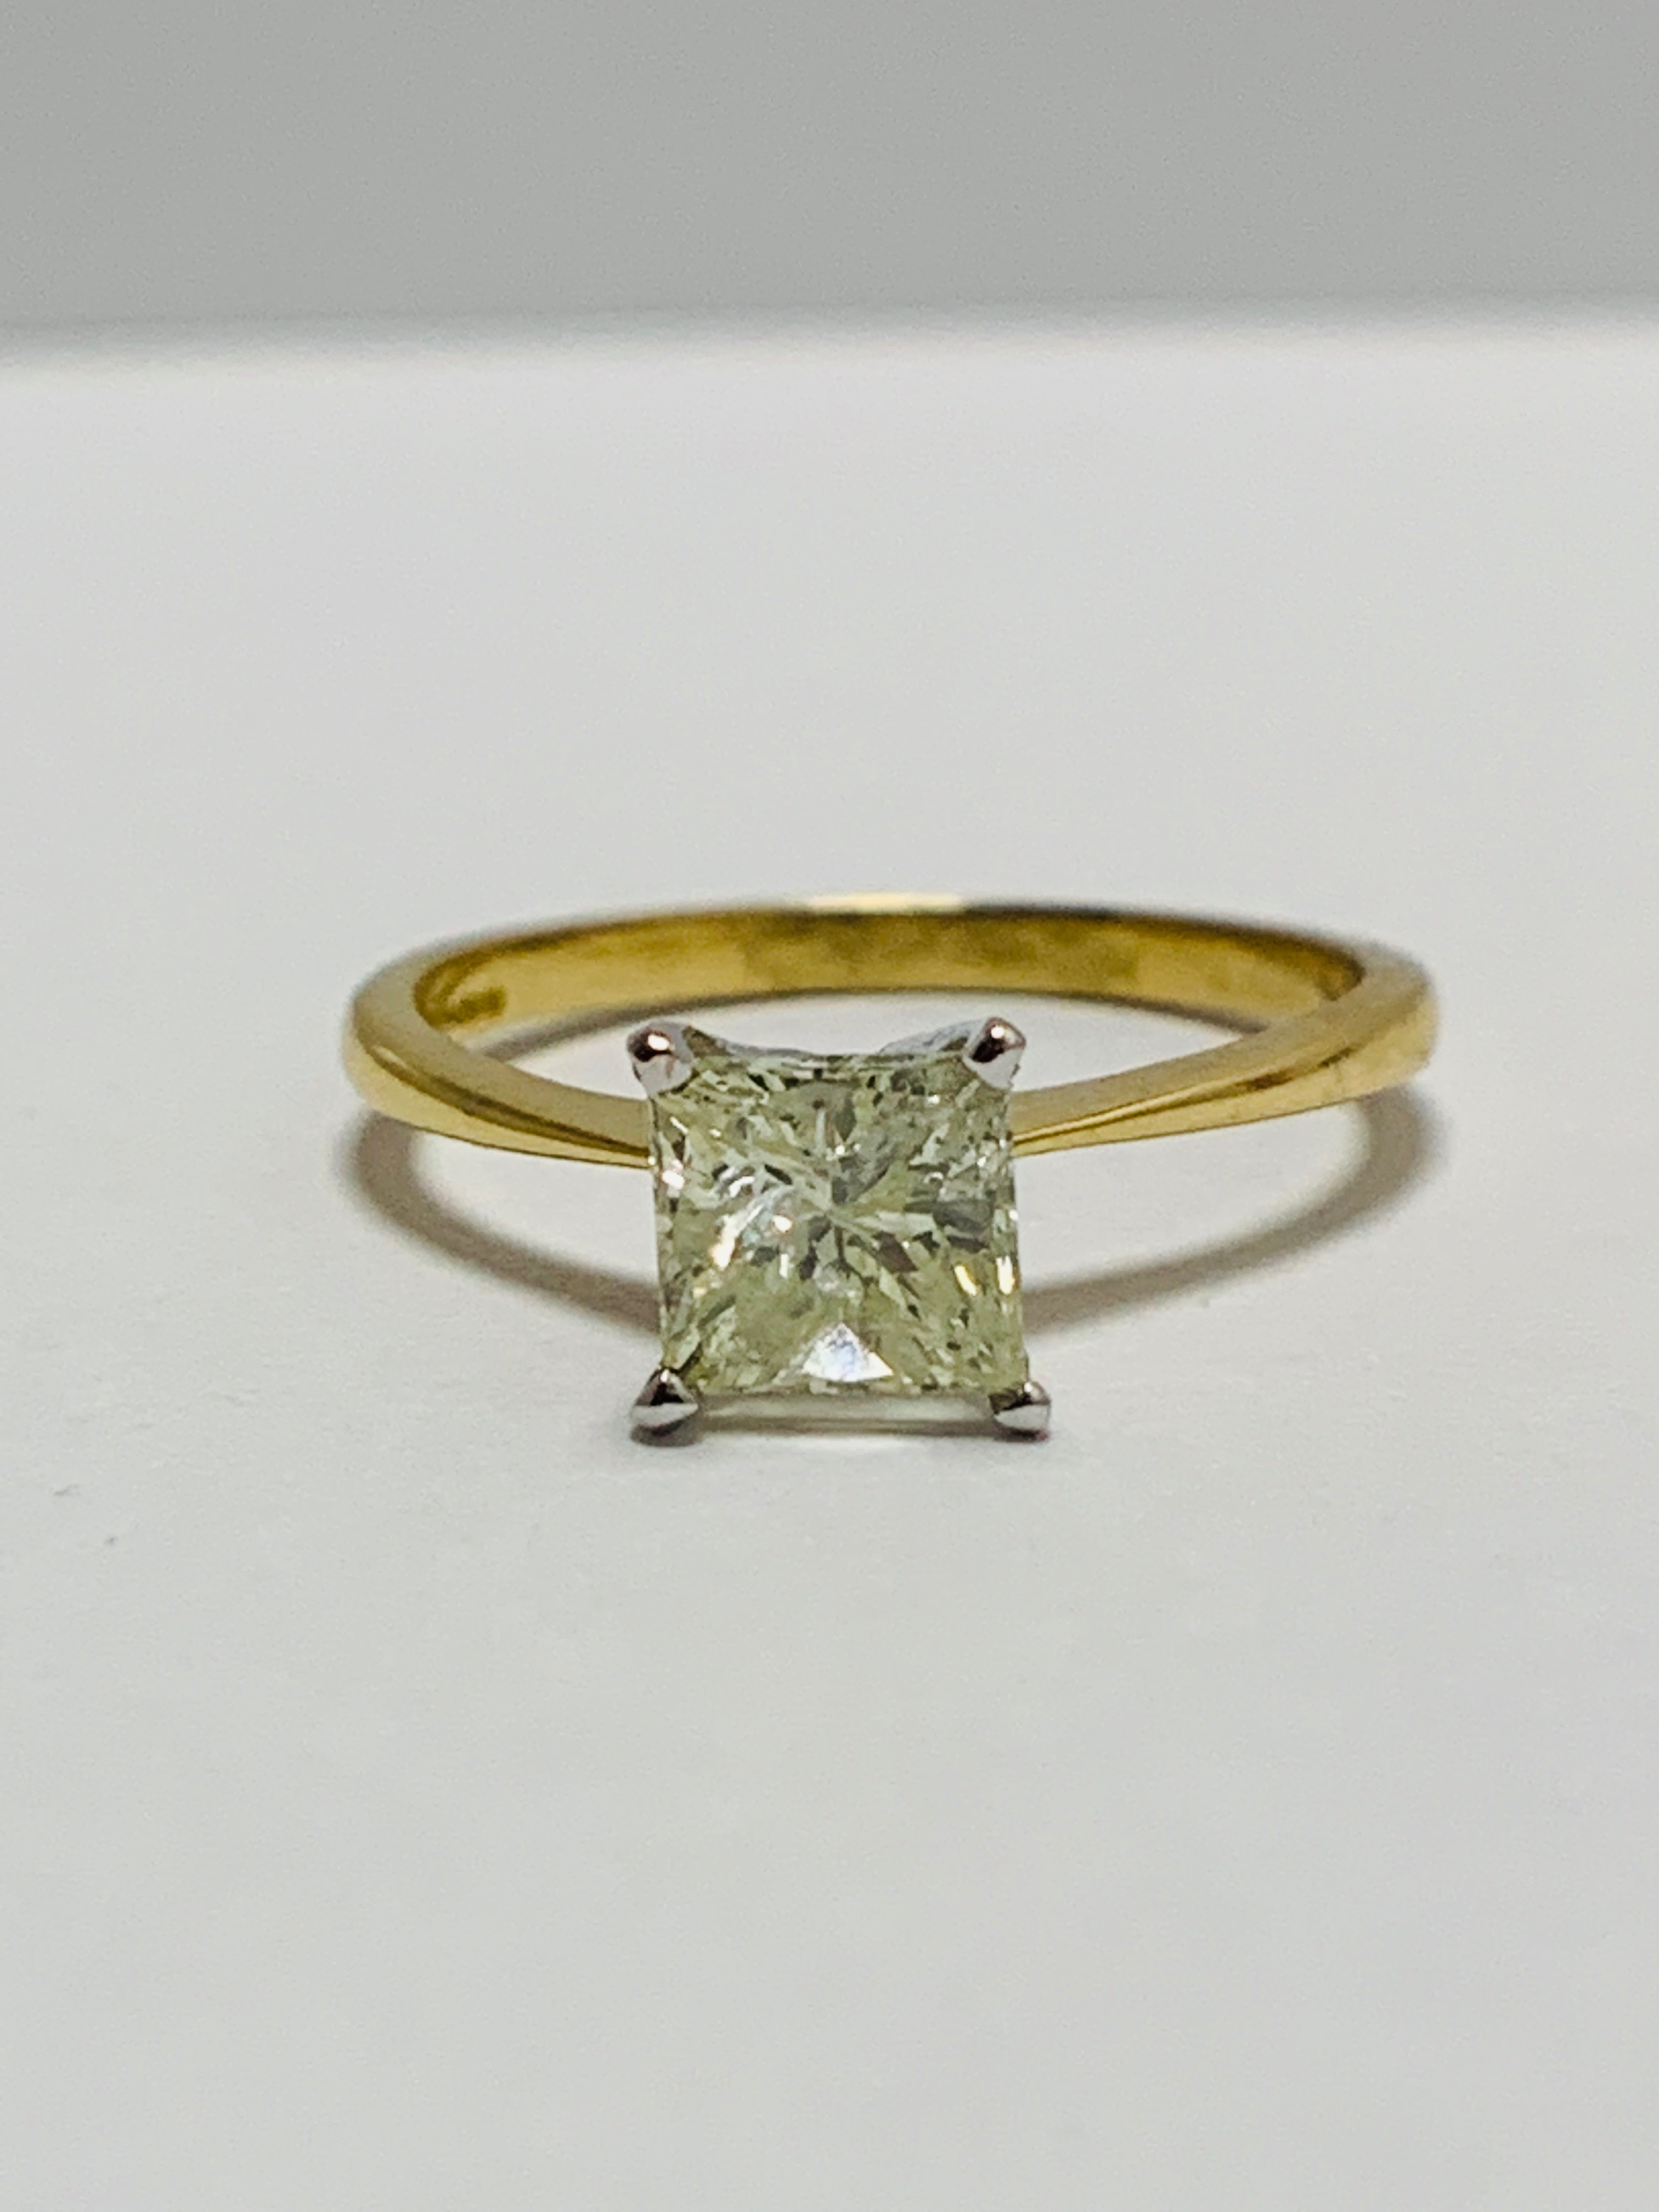 18ct Princess Cut natural diamond solitaire ring - Image 9 of 10